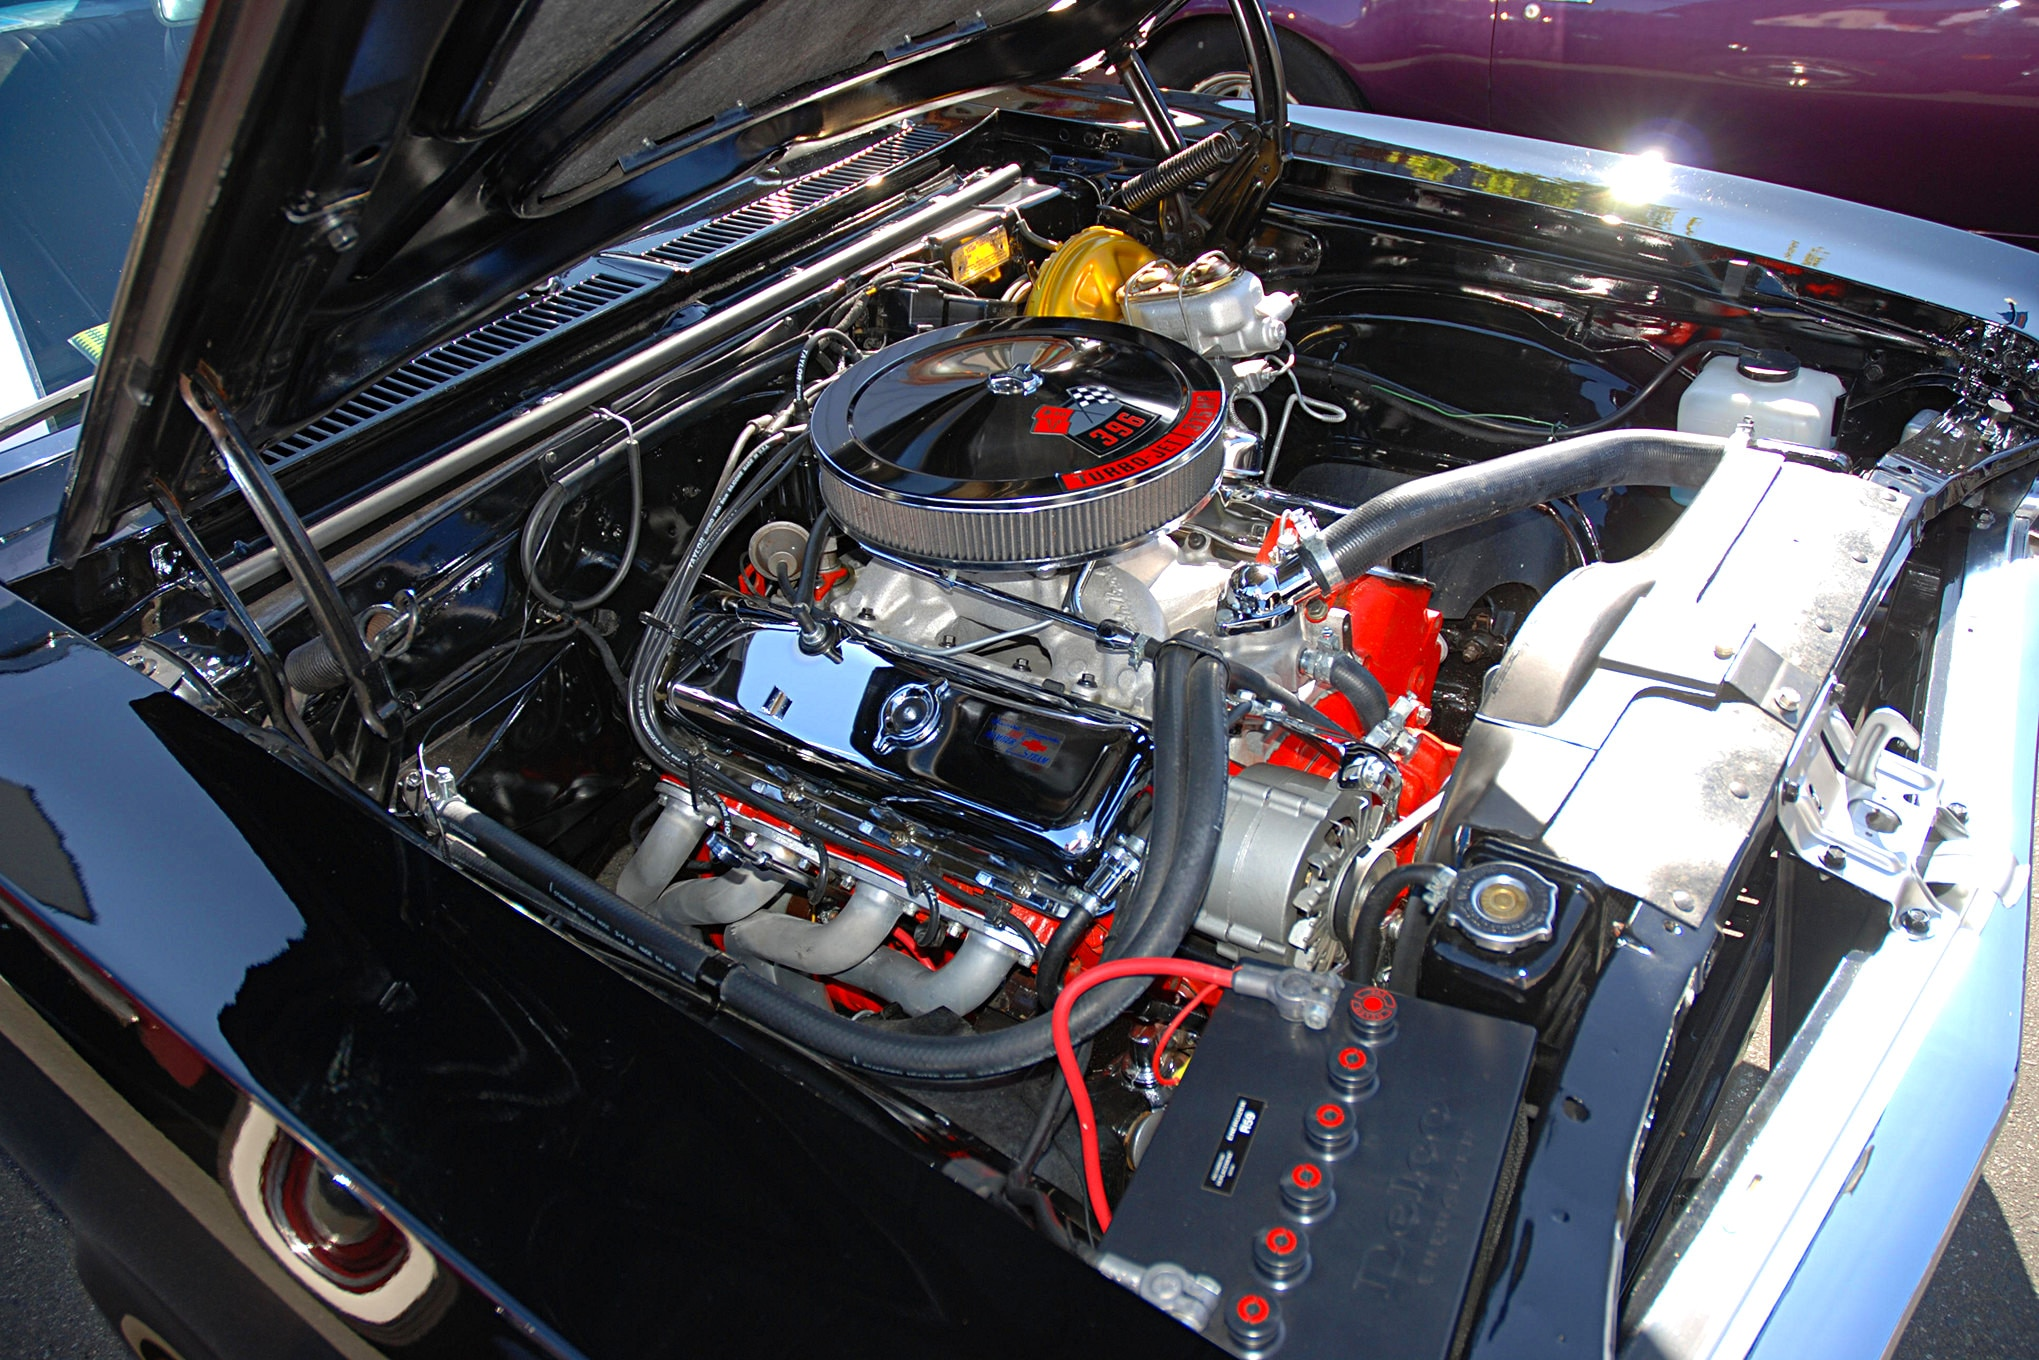 1968 Chevelle Engine Compartment Diagram - Year of Clean Water on